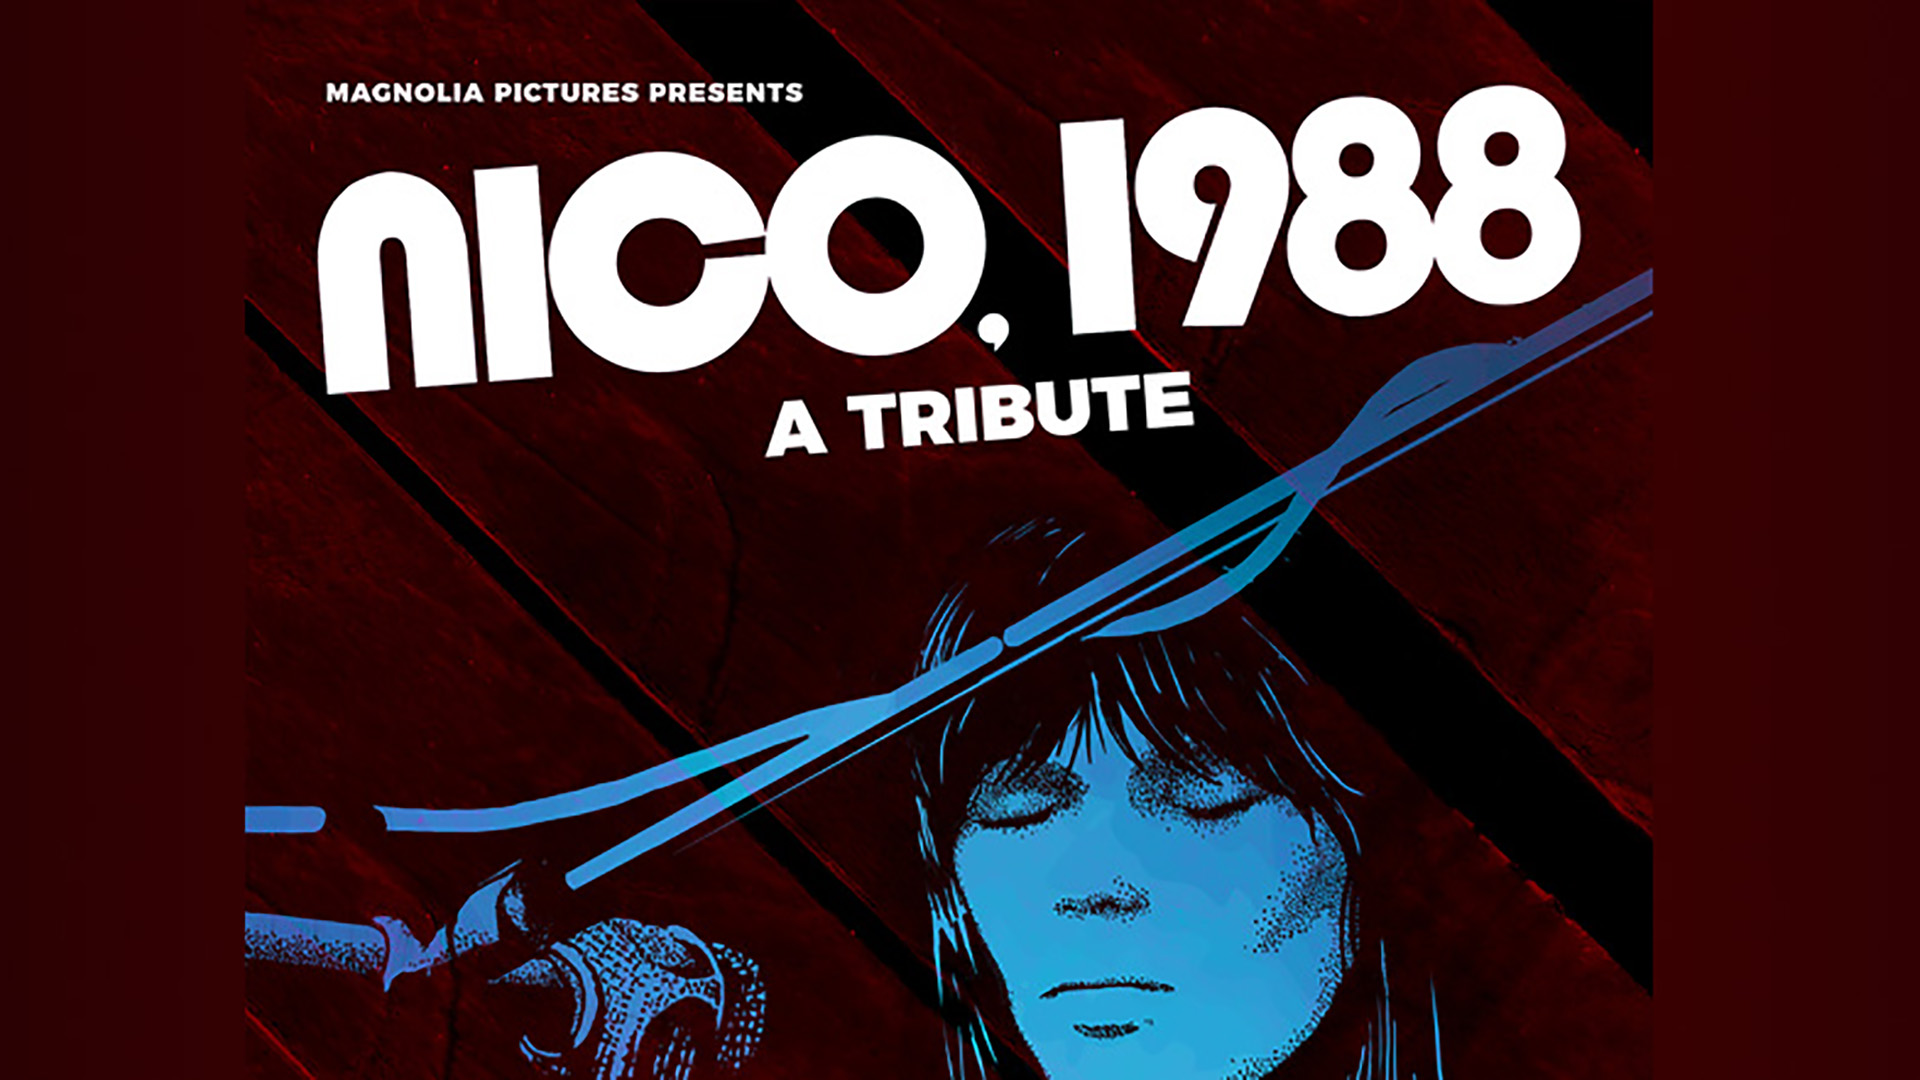 "Image for: ""NICO, 1988"" RELEASE IN THE USA + SPECIAL TRIBUTE TO NICO"